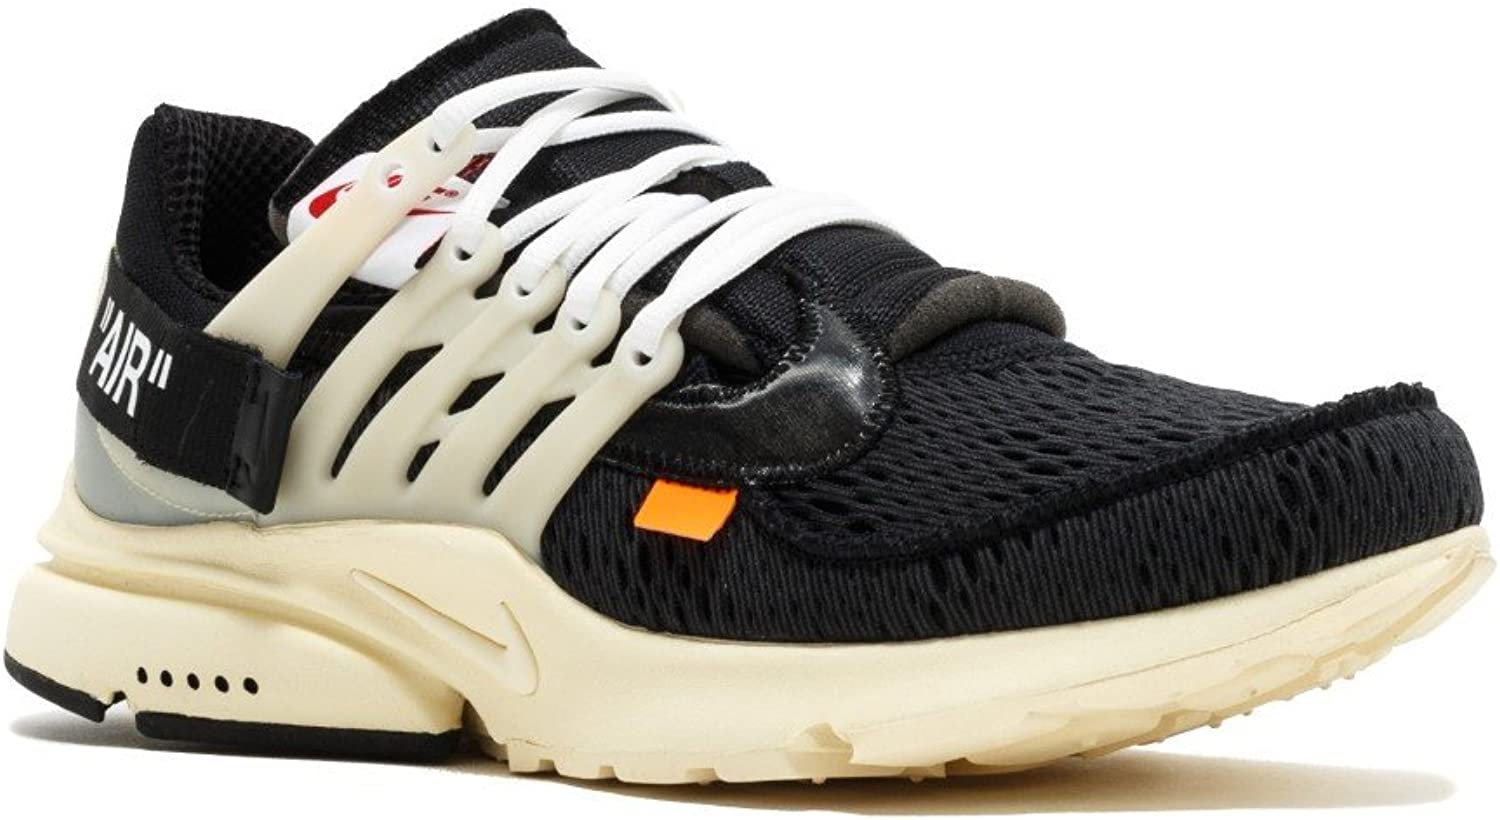 Nike The The The 10 AIR Presto'Off vit 'AA3830 -001  fabriks direkt